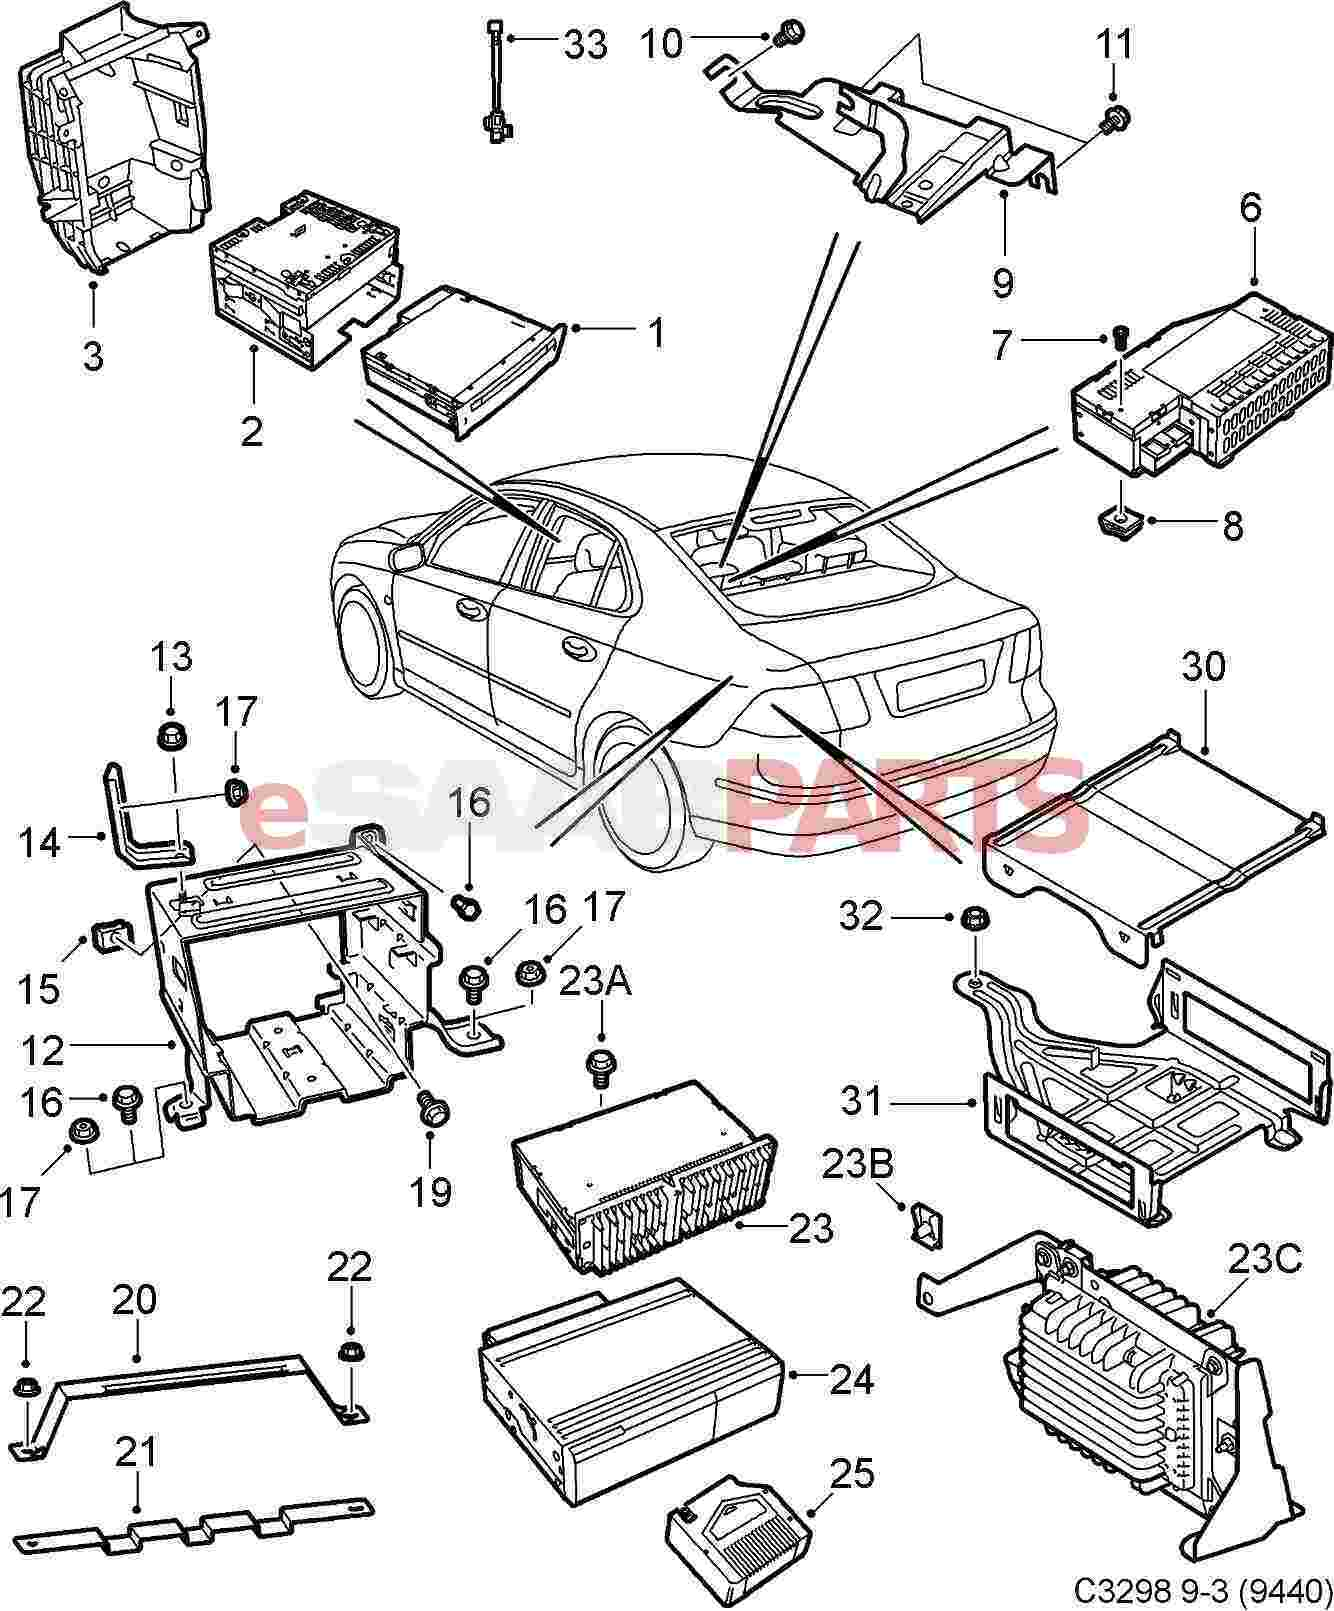 72752 esaabparts com saab 9 3 (9440) \u003e electrical parts \u003e radio Wiring Diagram 2003 Saab 9-3 Convertible at soozxer.org